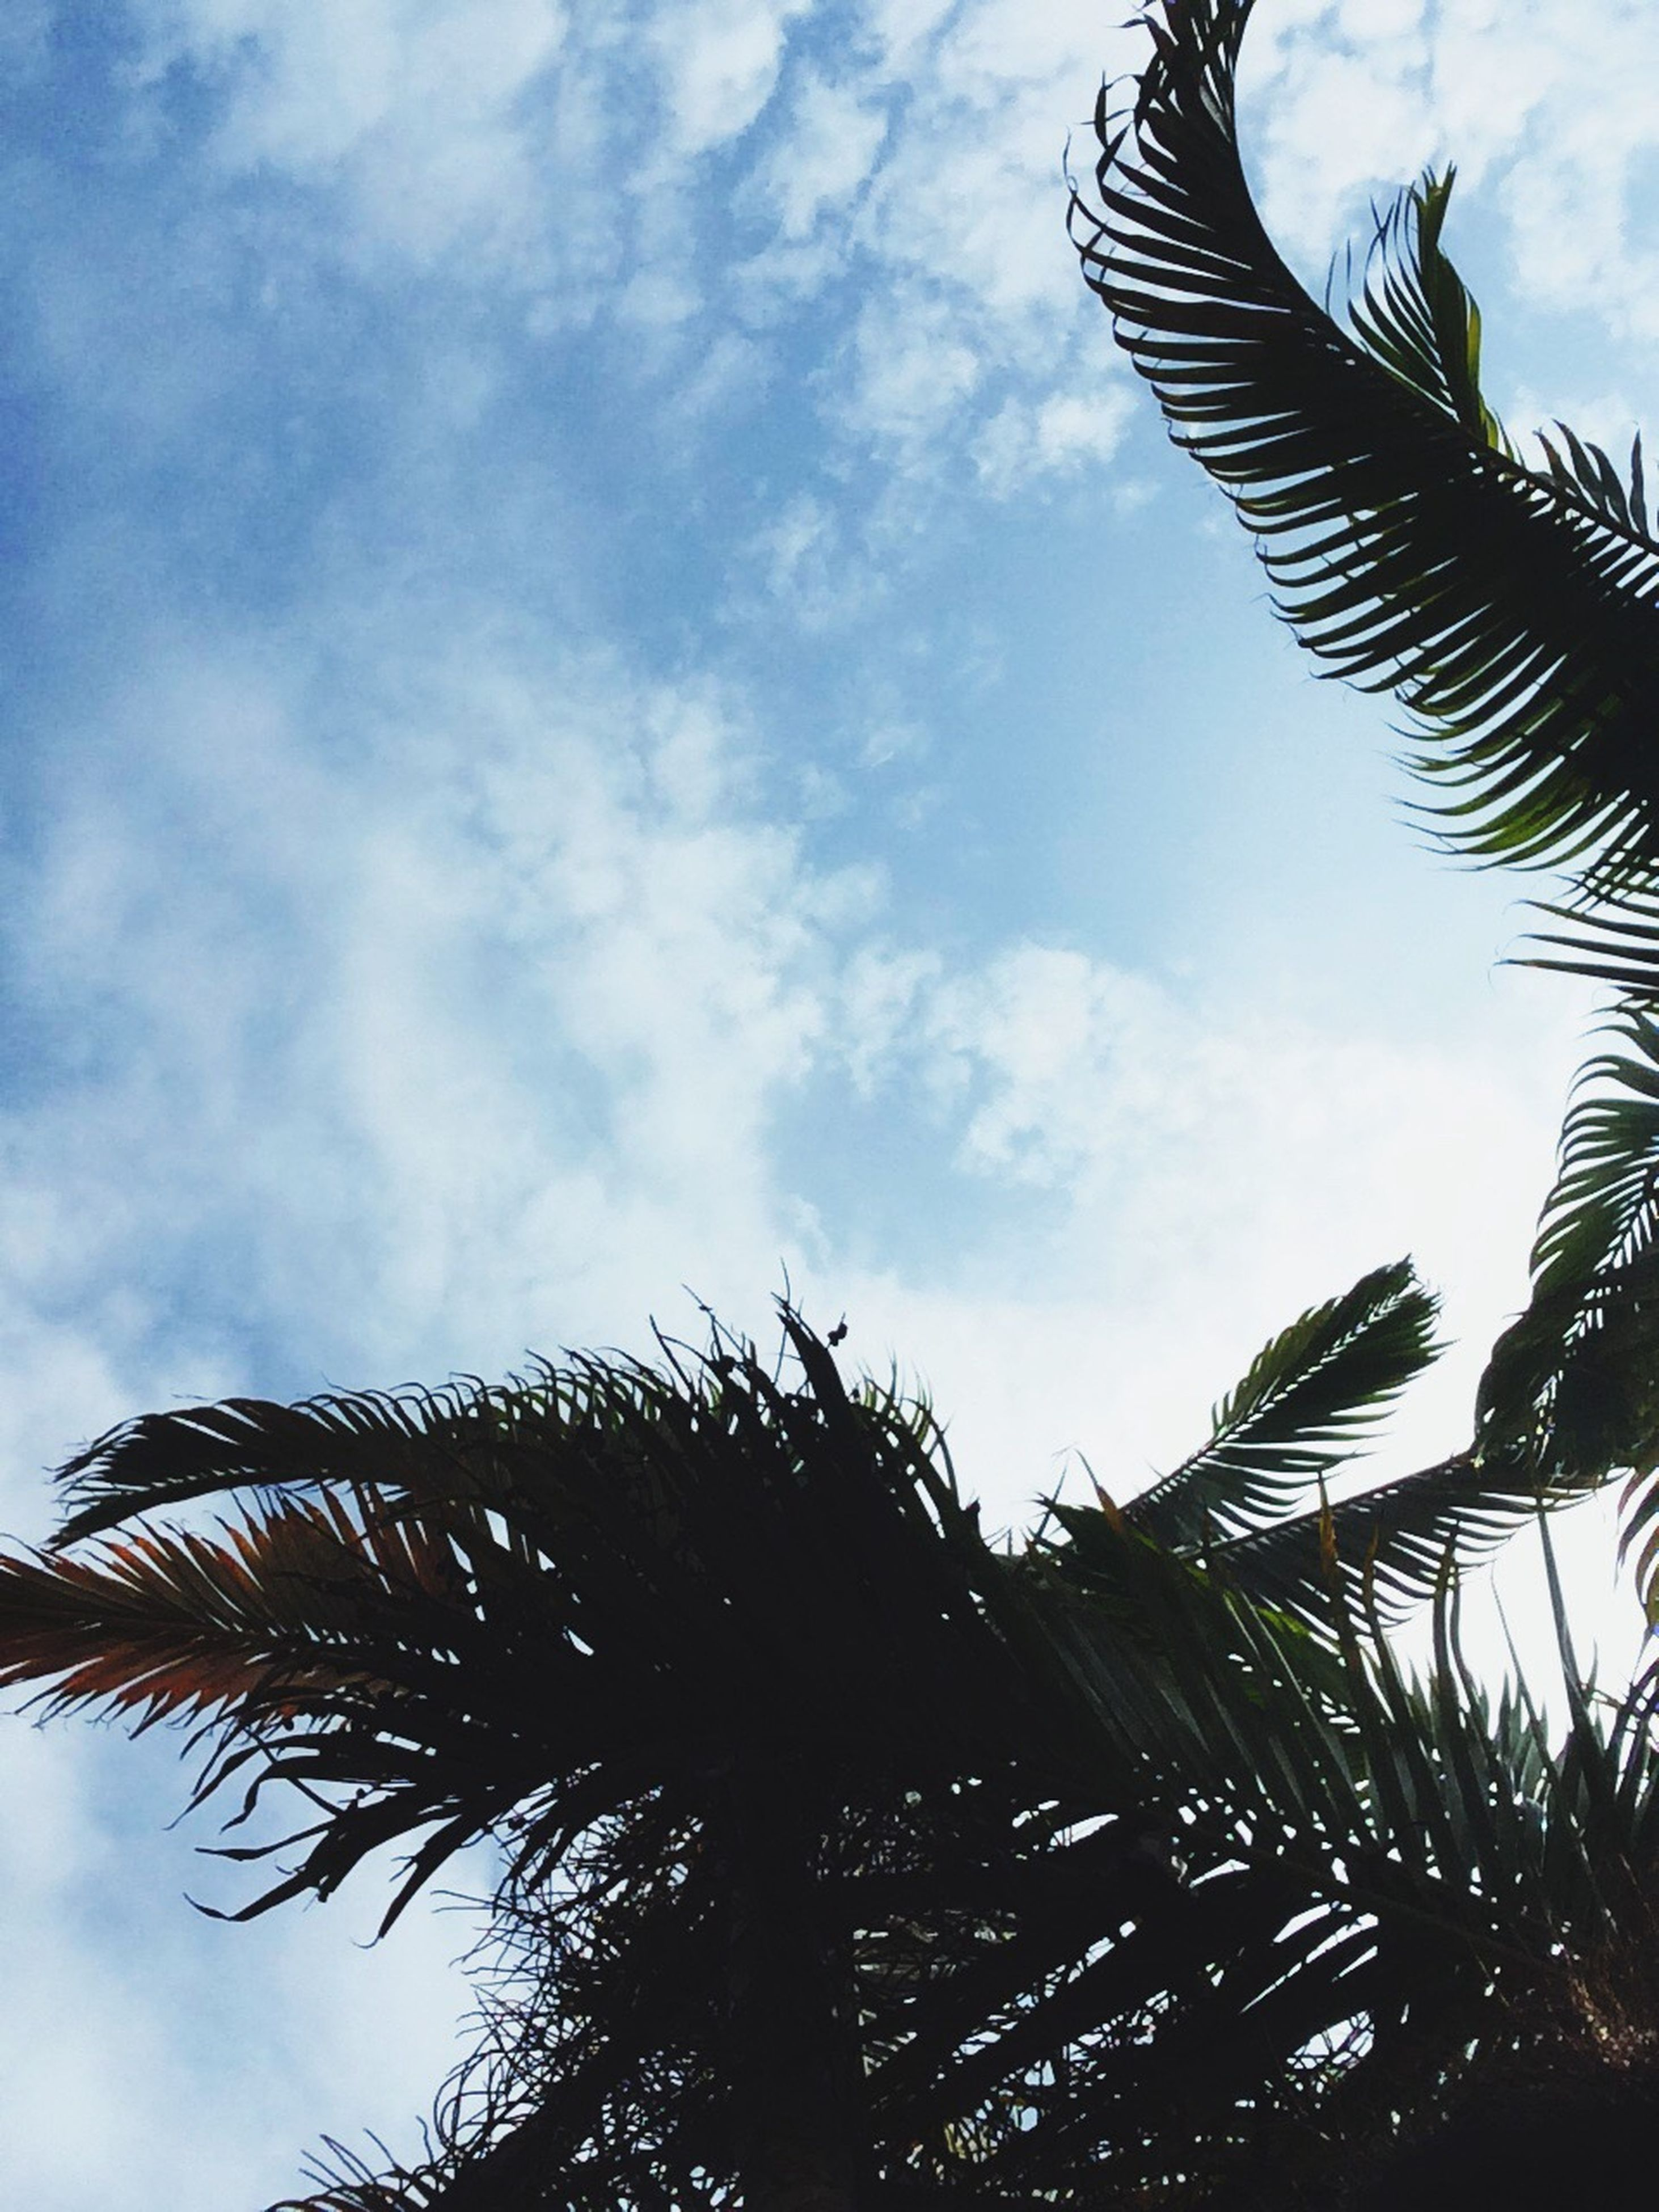 low angle view, tree, sky, palm tree, day, cloud - sky, nature, no people, outdoors, growth, animal themes, beauty in nature, branch